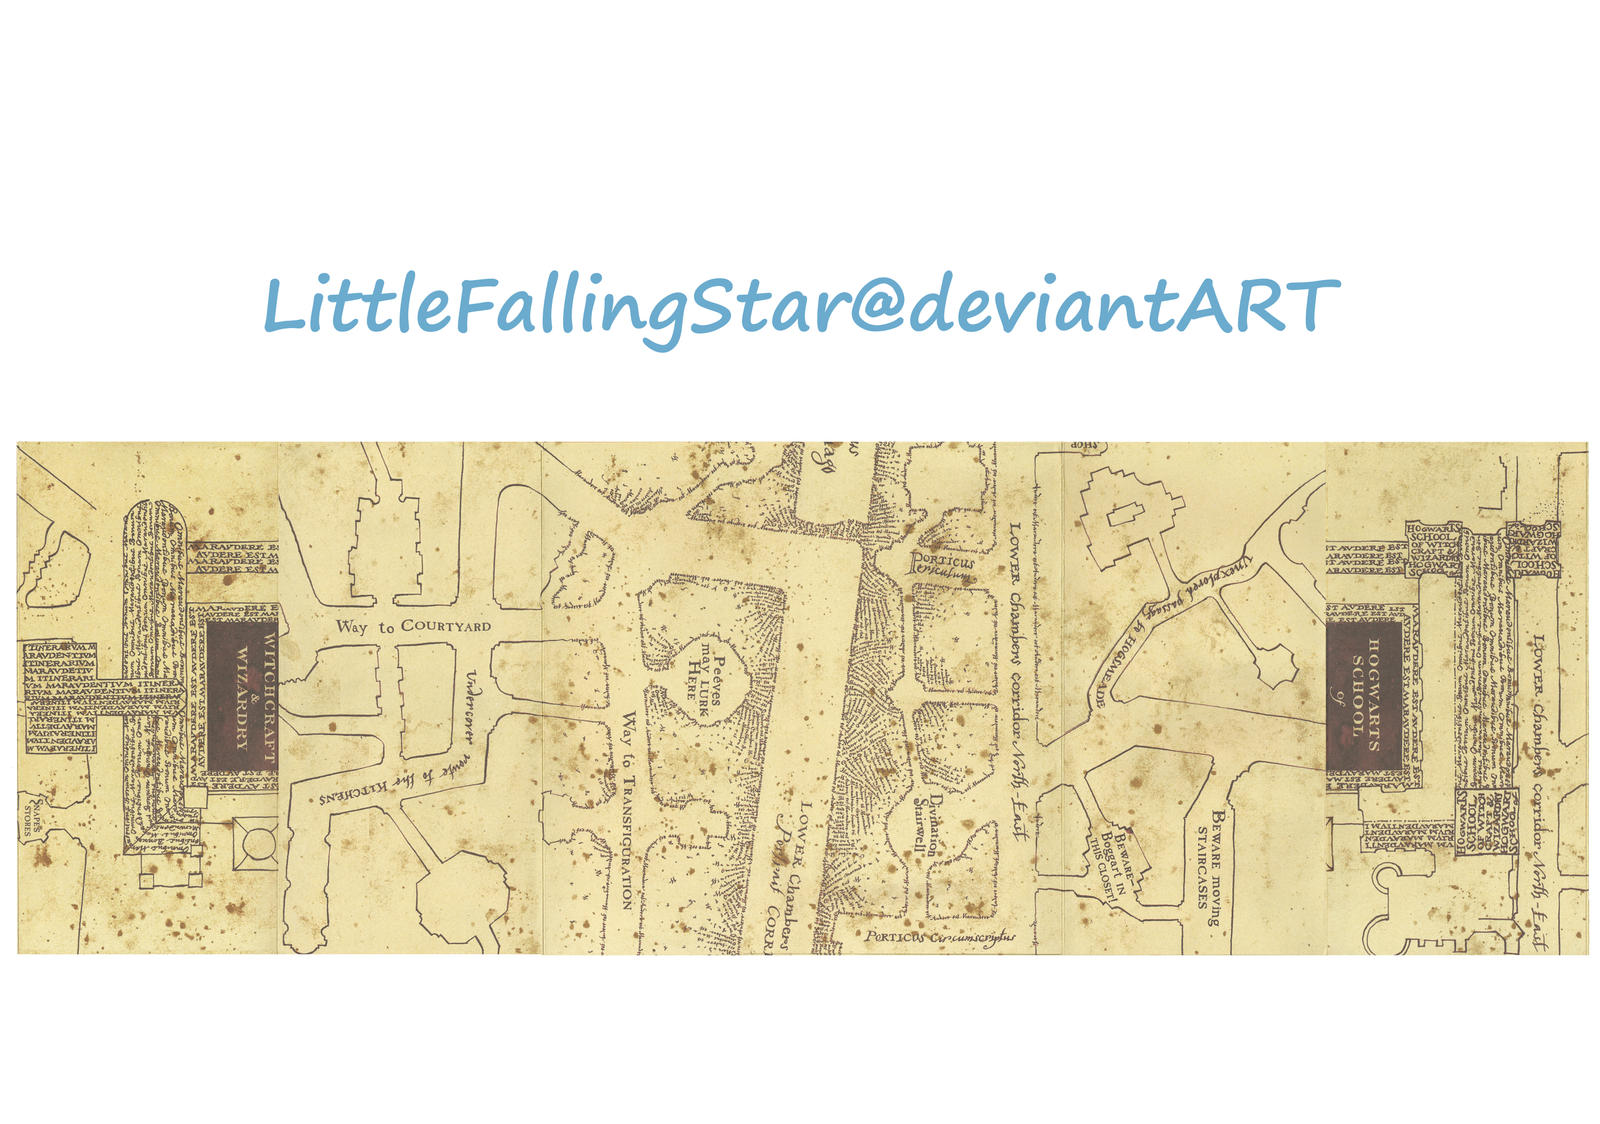 marauders map middle flaps by littlefallingstar marauders map middle flaps by littlefallingstar